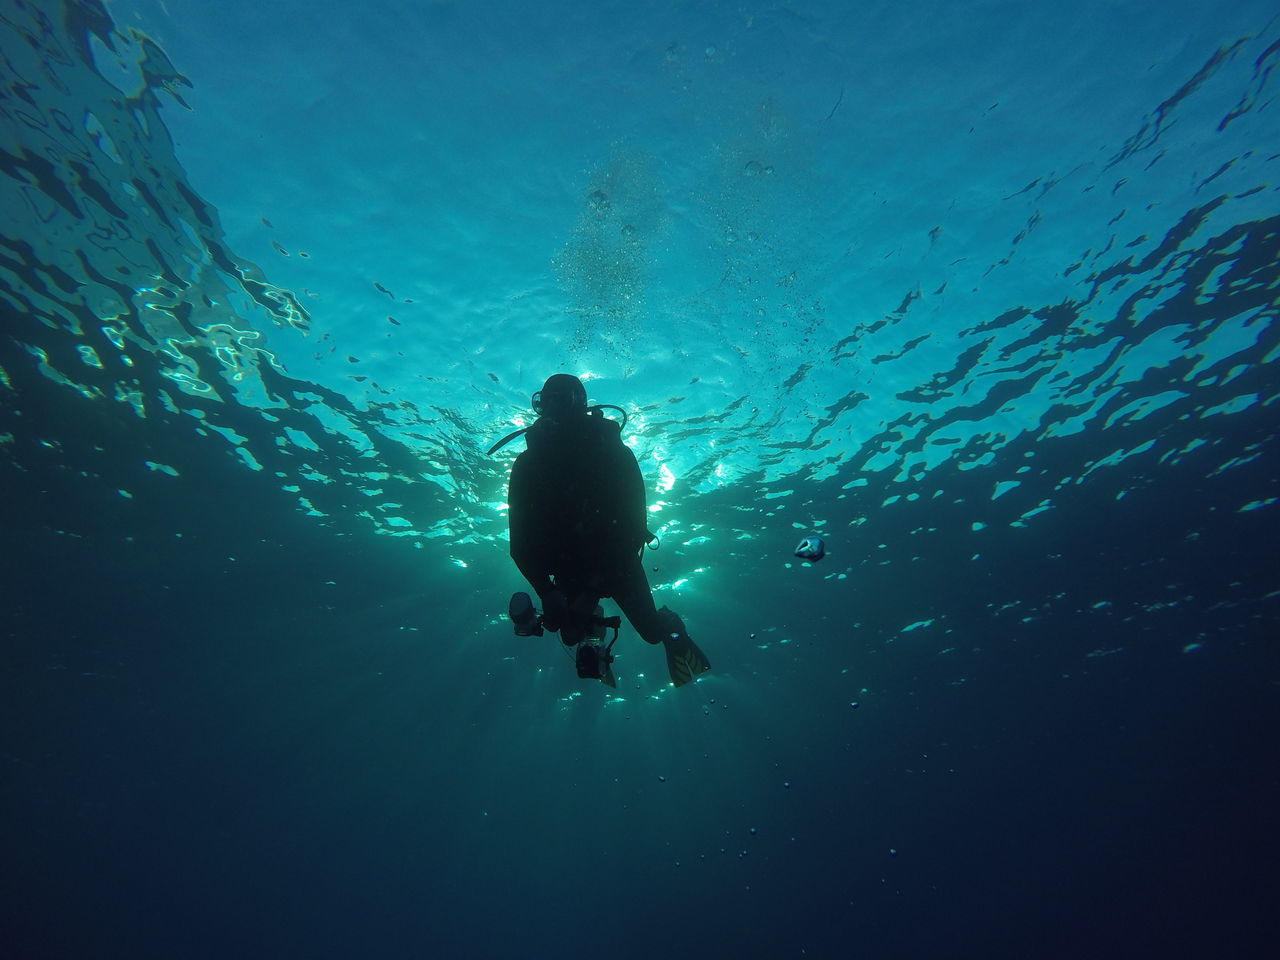 only men, underwater, scuba diving, adventure, exploration, leisure activity, sea, undersea, diving suit, one person, nature, adults only, diving equipment, people, swimming, one man only, men, adult, beauty in nature, scuba diver, outdoors, day